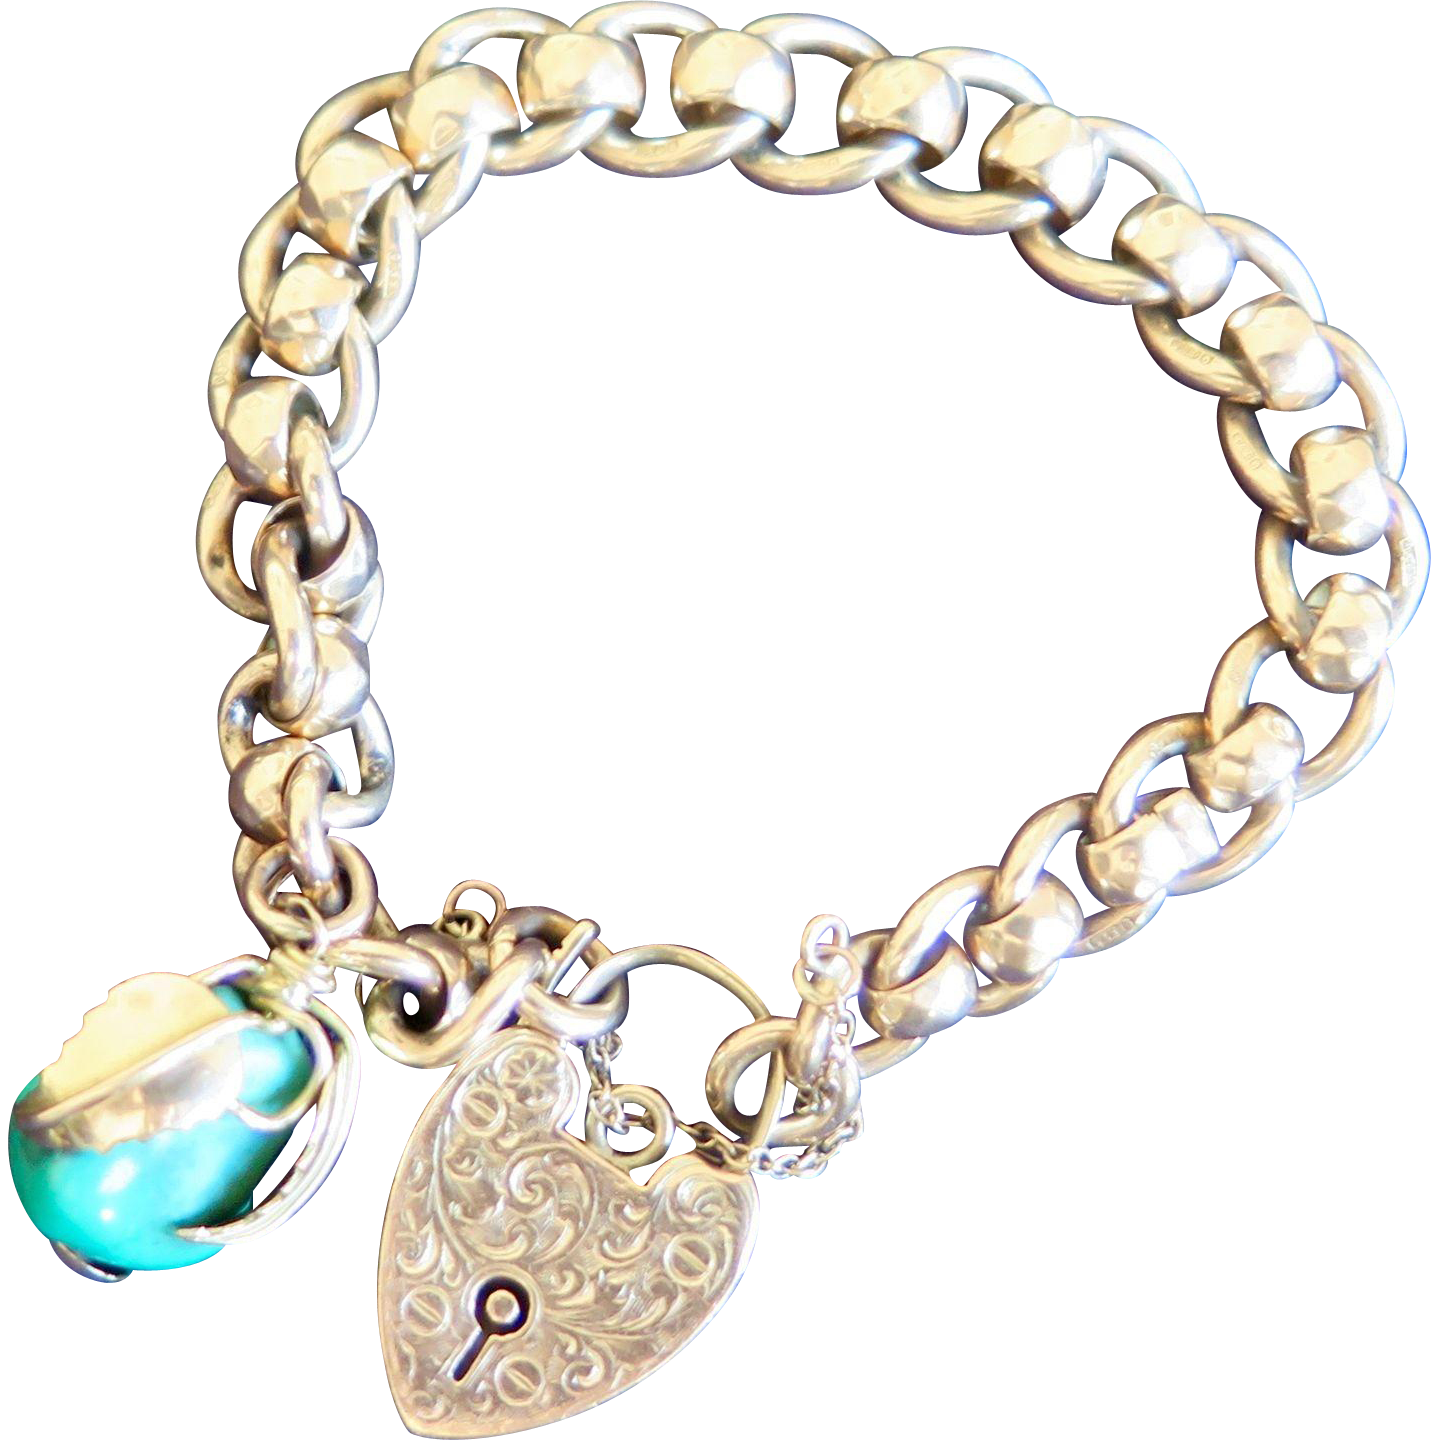 Edwardian heart lock 9k gold charm bracelet with turquoise pome